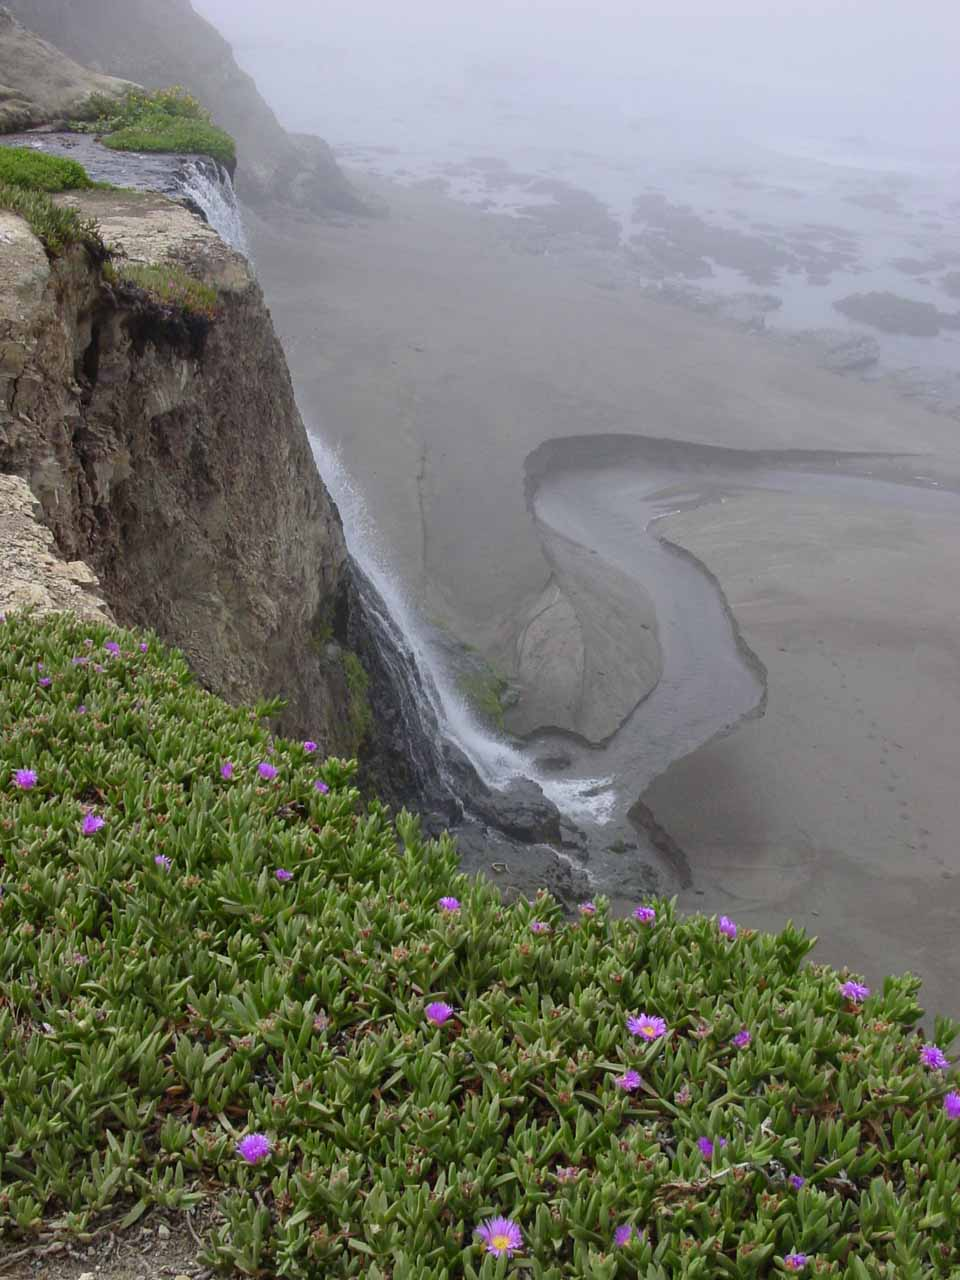 Our last look at Alamere Falls over what appeared to be ice plants